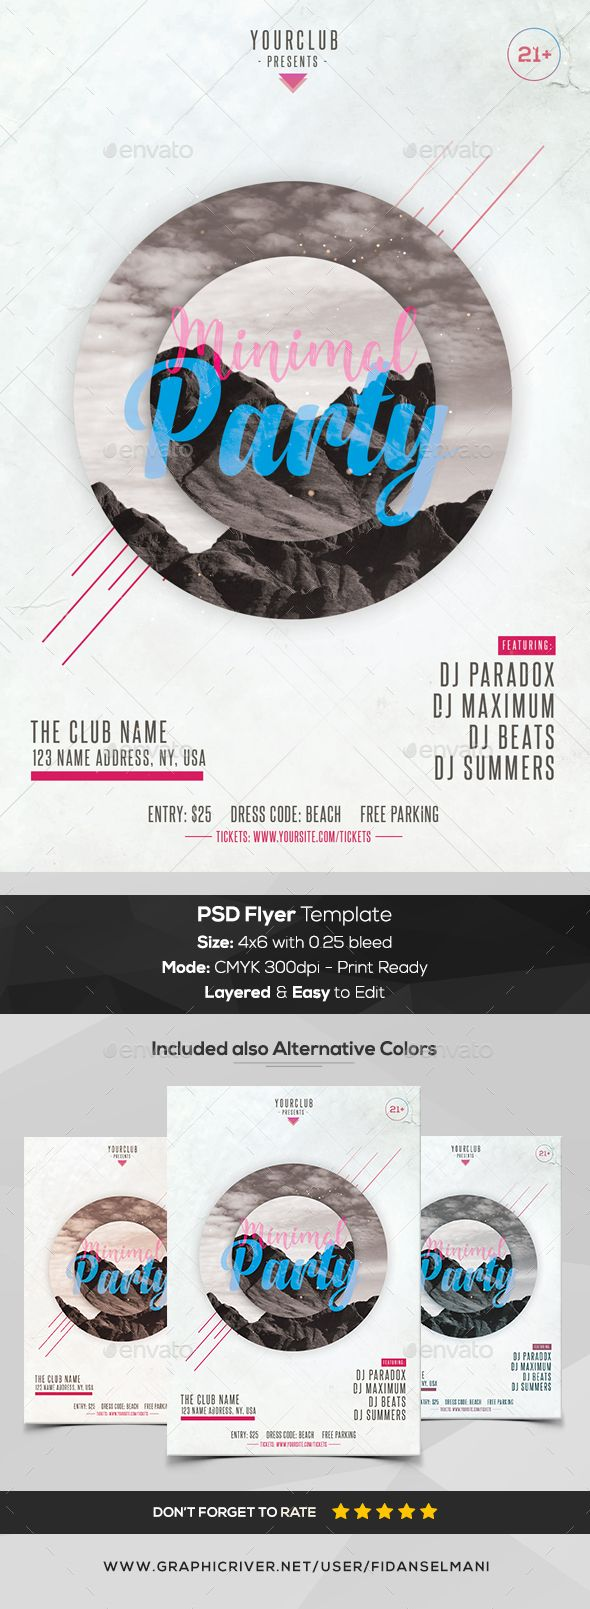 Minimal #Party - PSD #Flyer Template - Flyers Print Templates Download here:  https://graphicriver.net/item/minimal-party-psd-flyer-template/20295714?ref=alena994